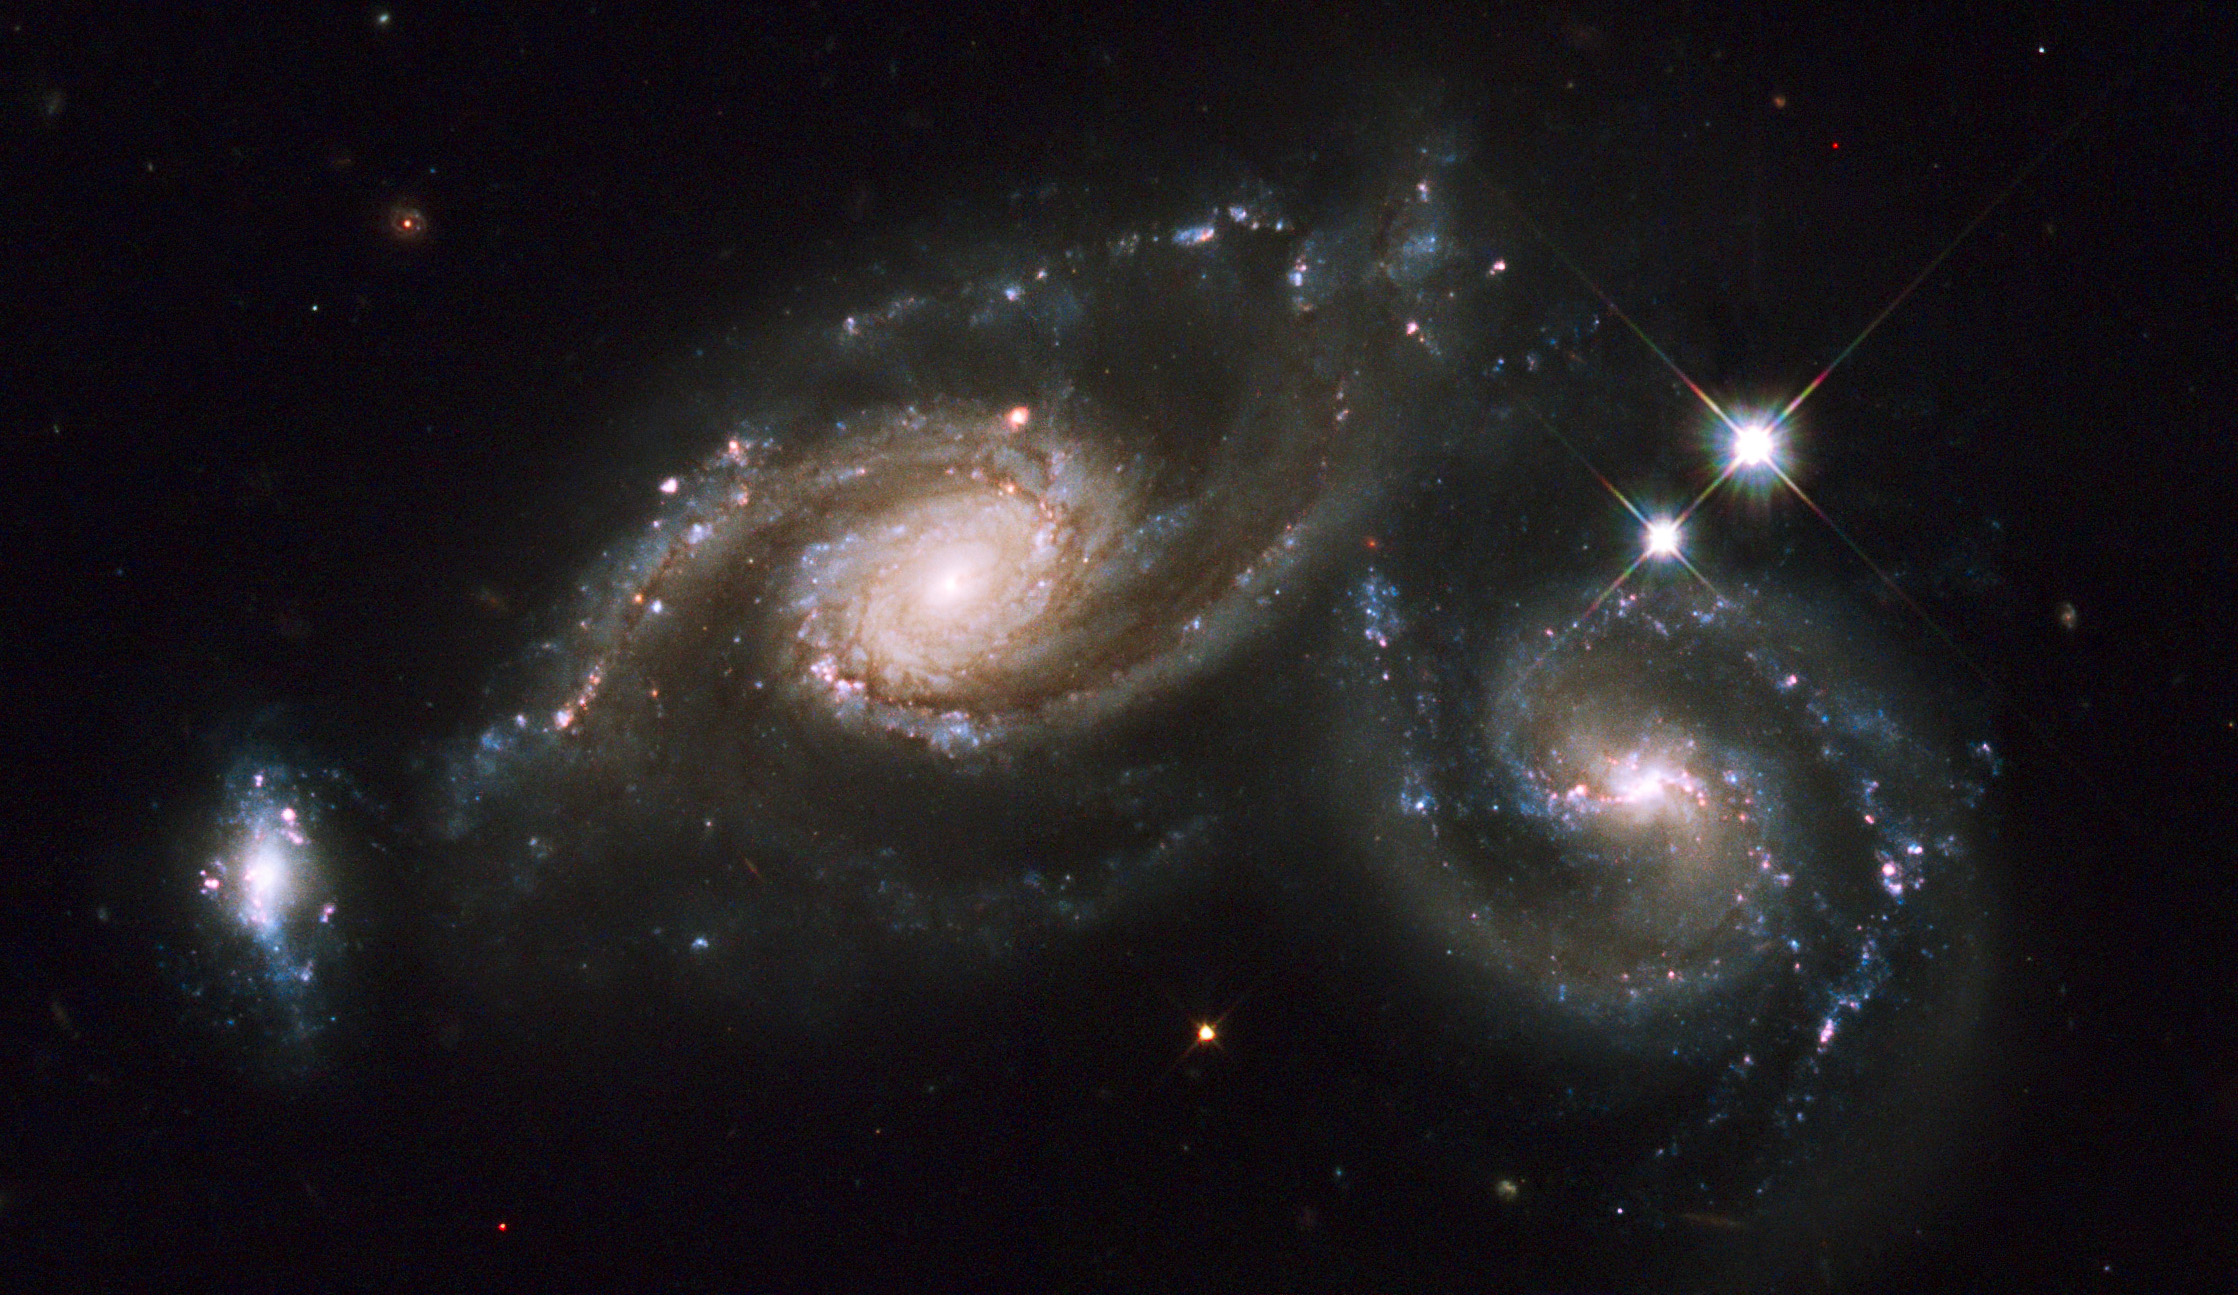 galaxies hubble telescope discovers - photo #29